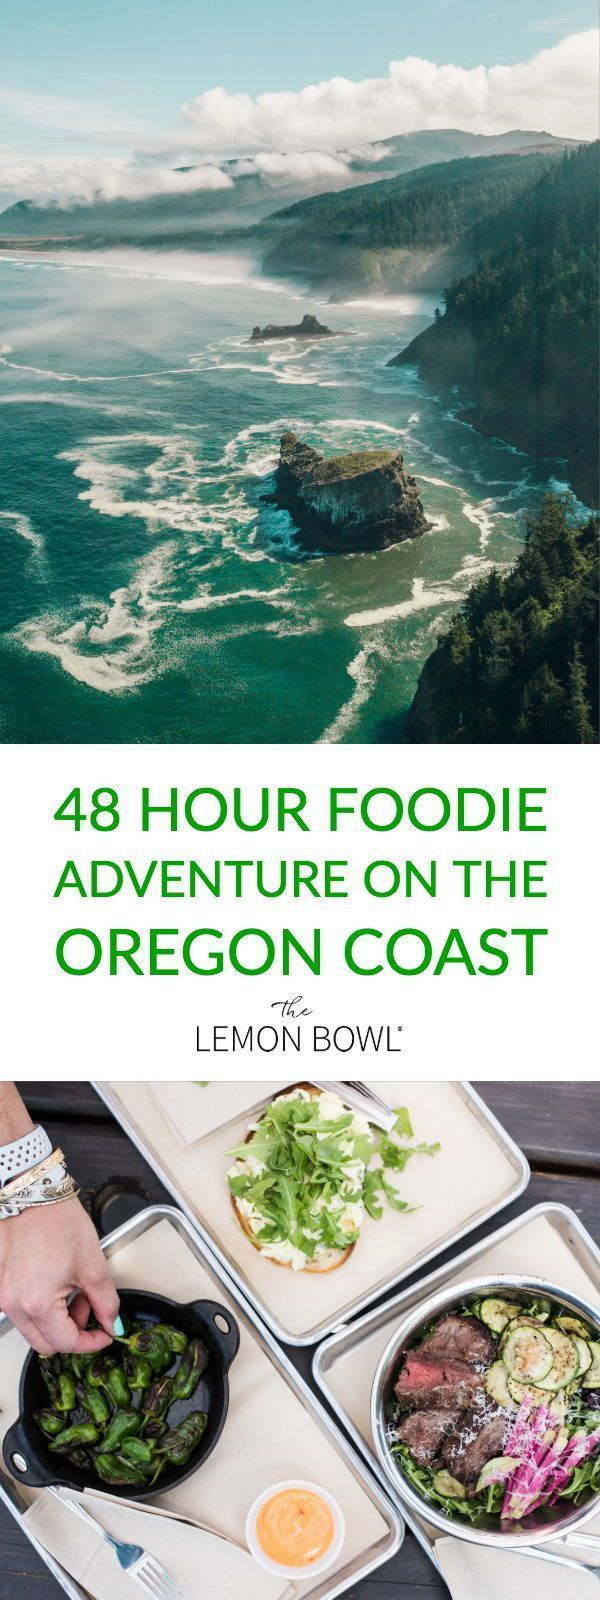 48 Hour Foodie Journey on the Oregon Coast